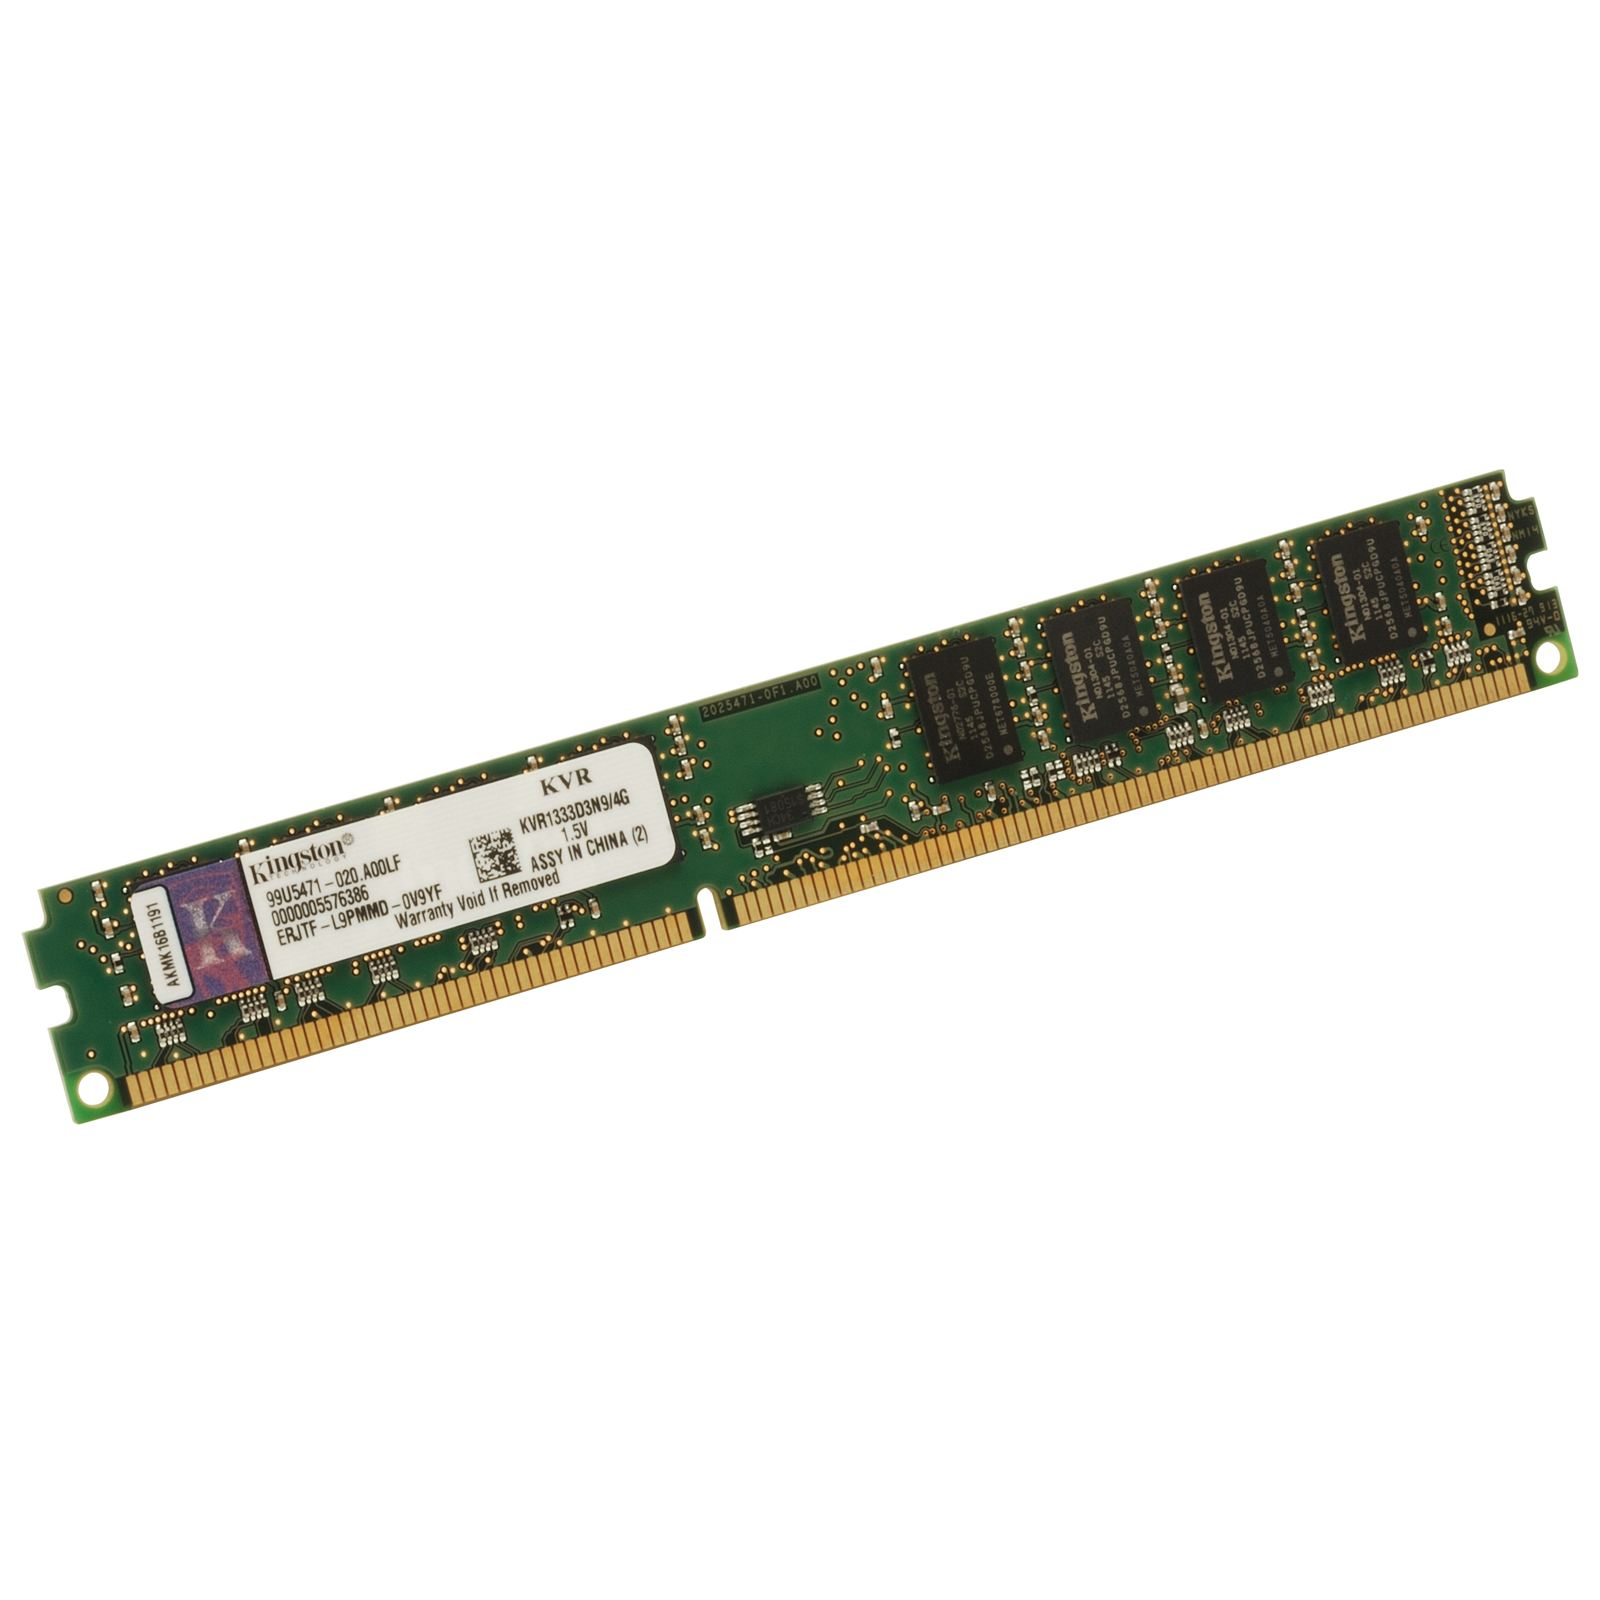 Kingston 4GB 1600 BUS DDR 3